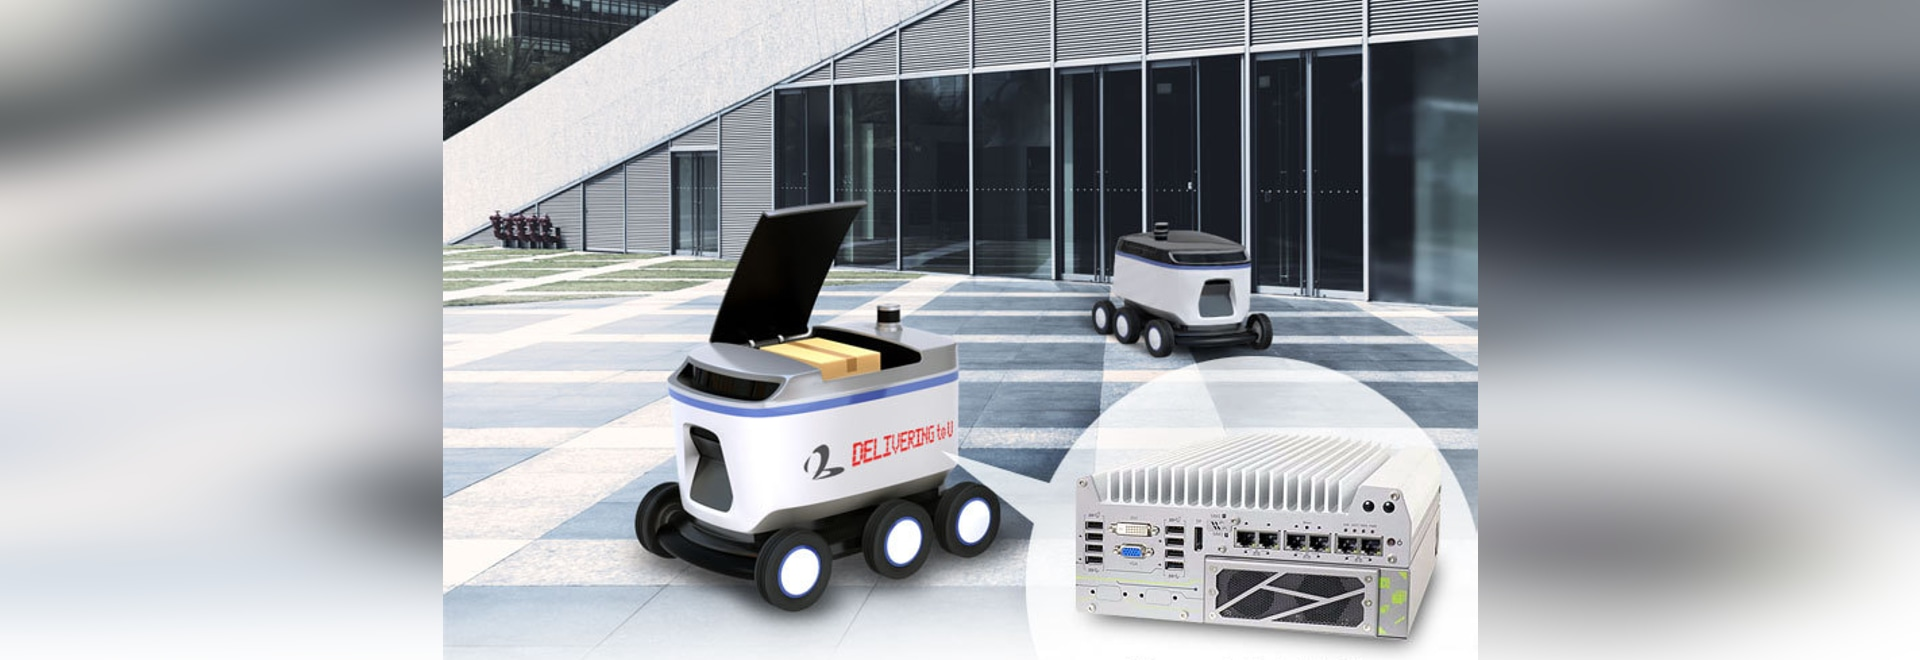 Automated Last-mile Delivery Made Possible with Neousys' Edge AI Platforms